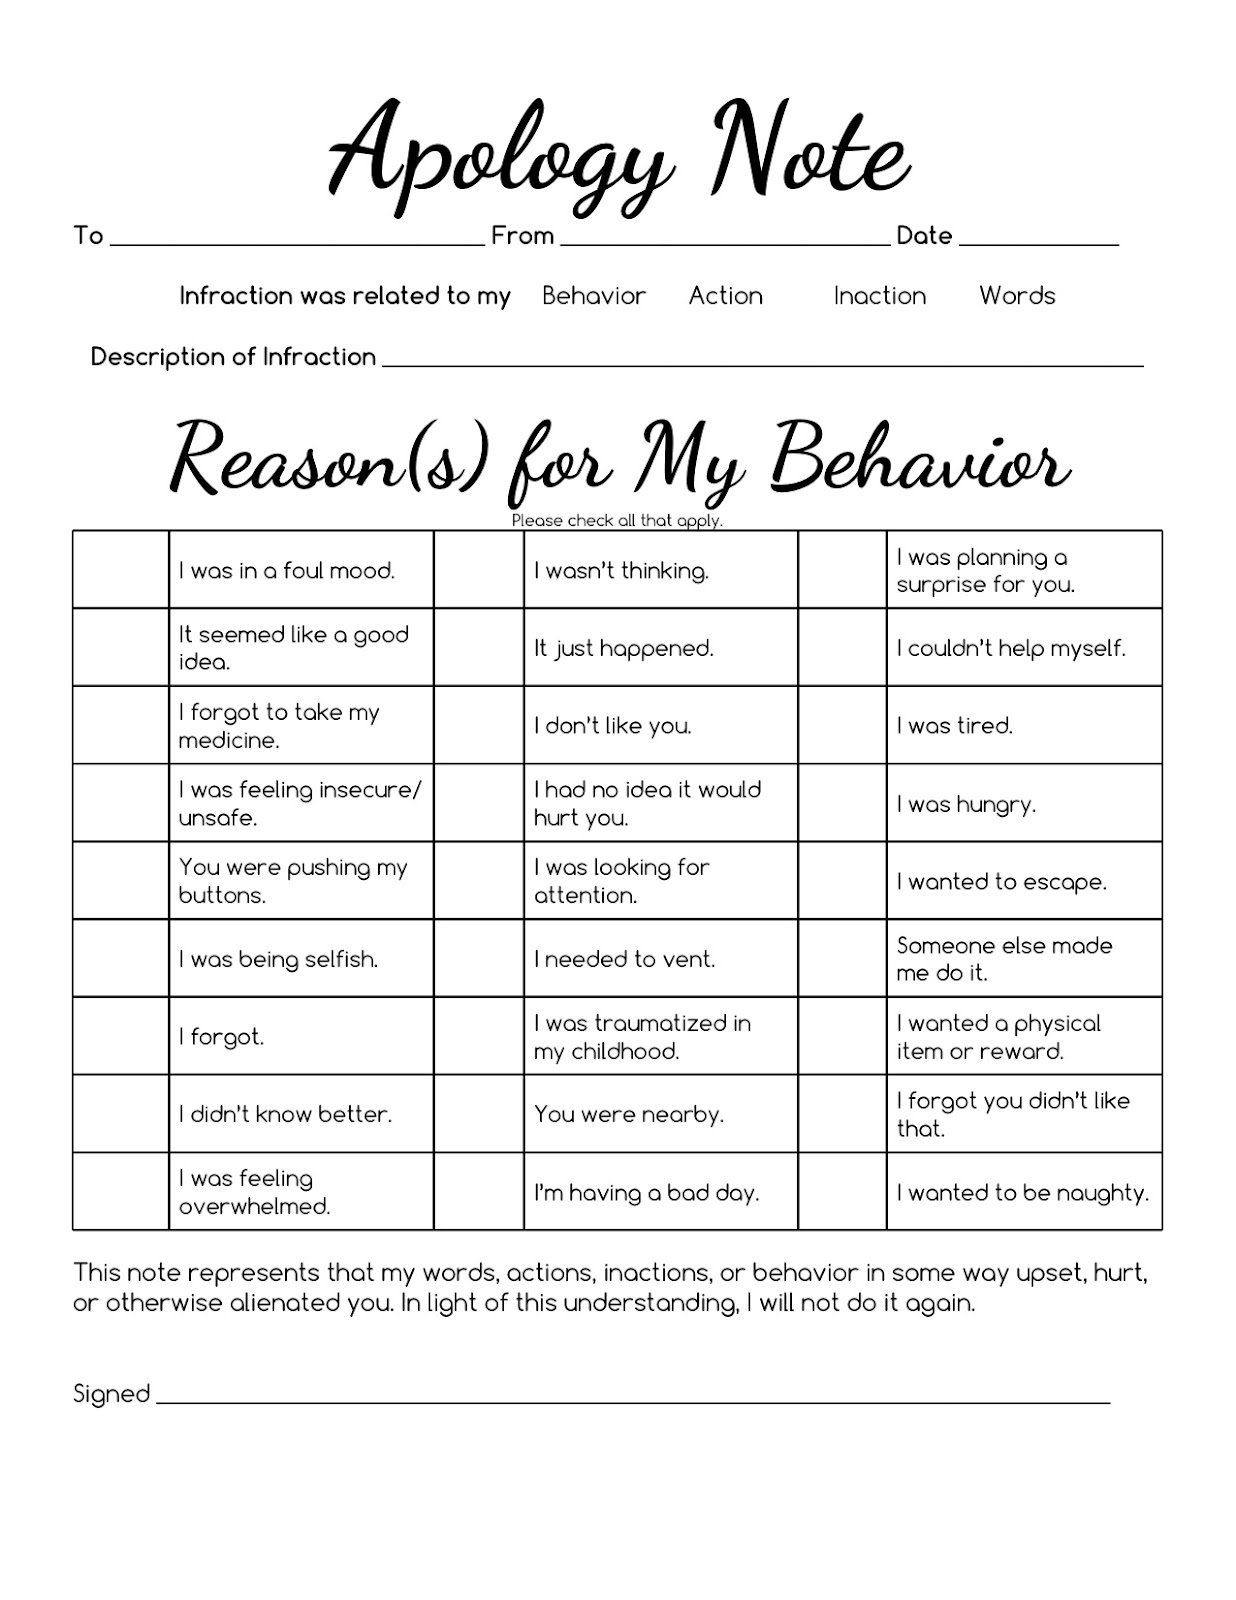 SpEd Head: Apology Note Checklist